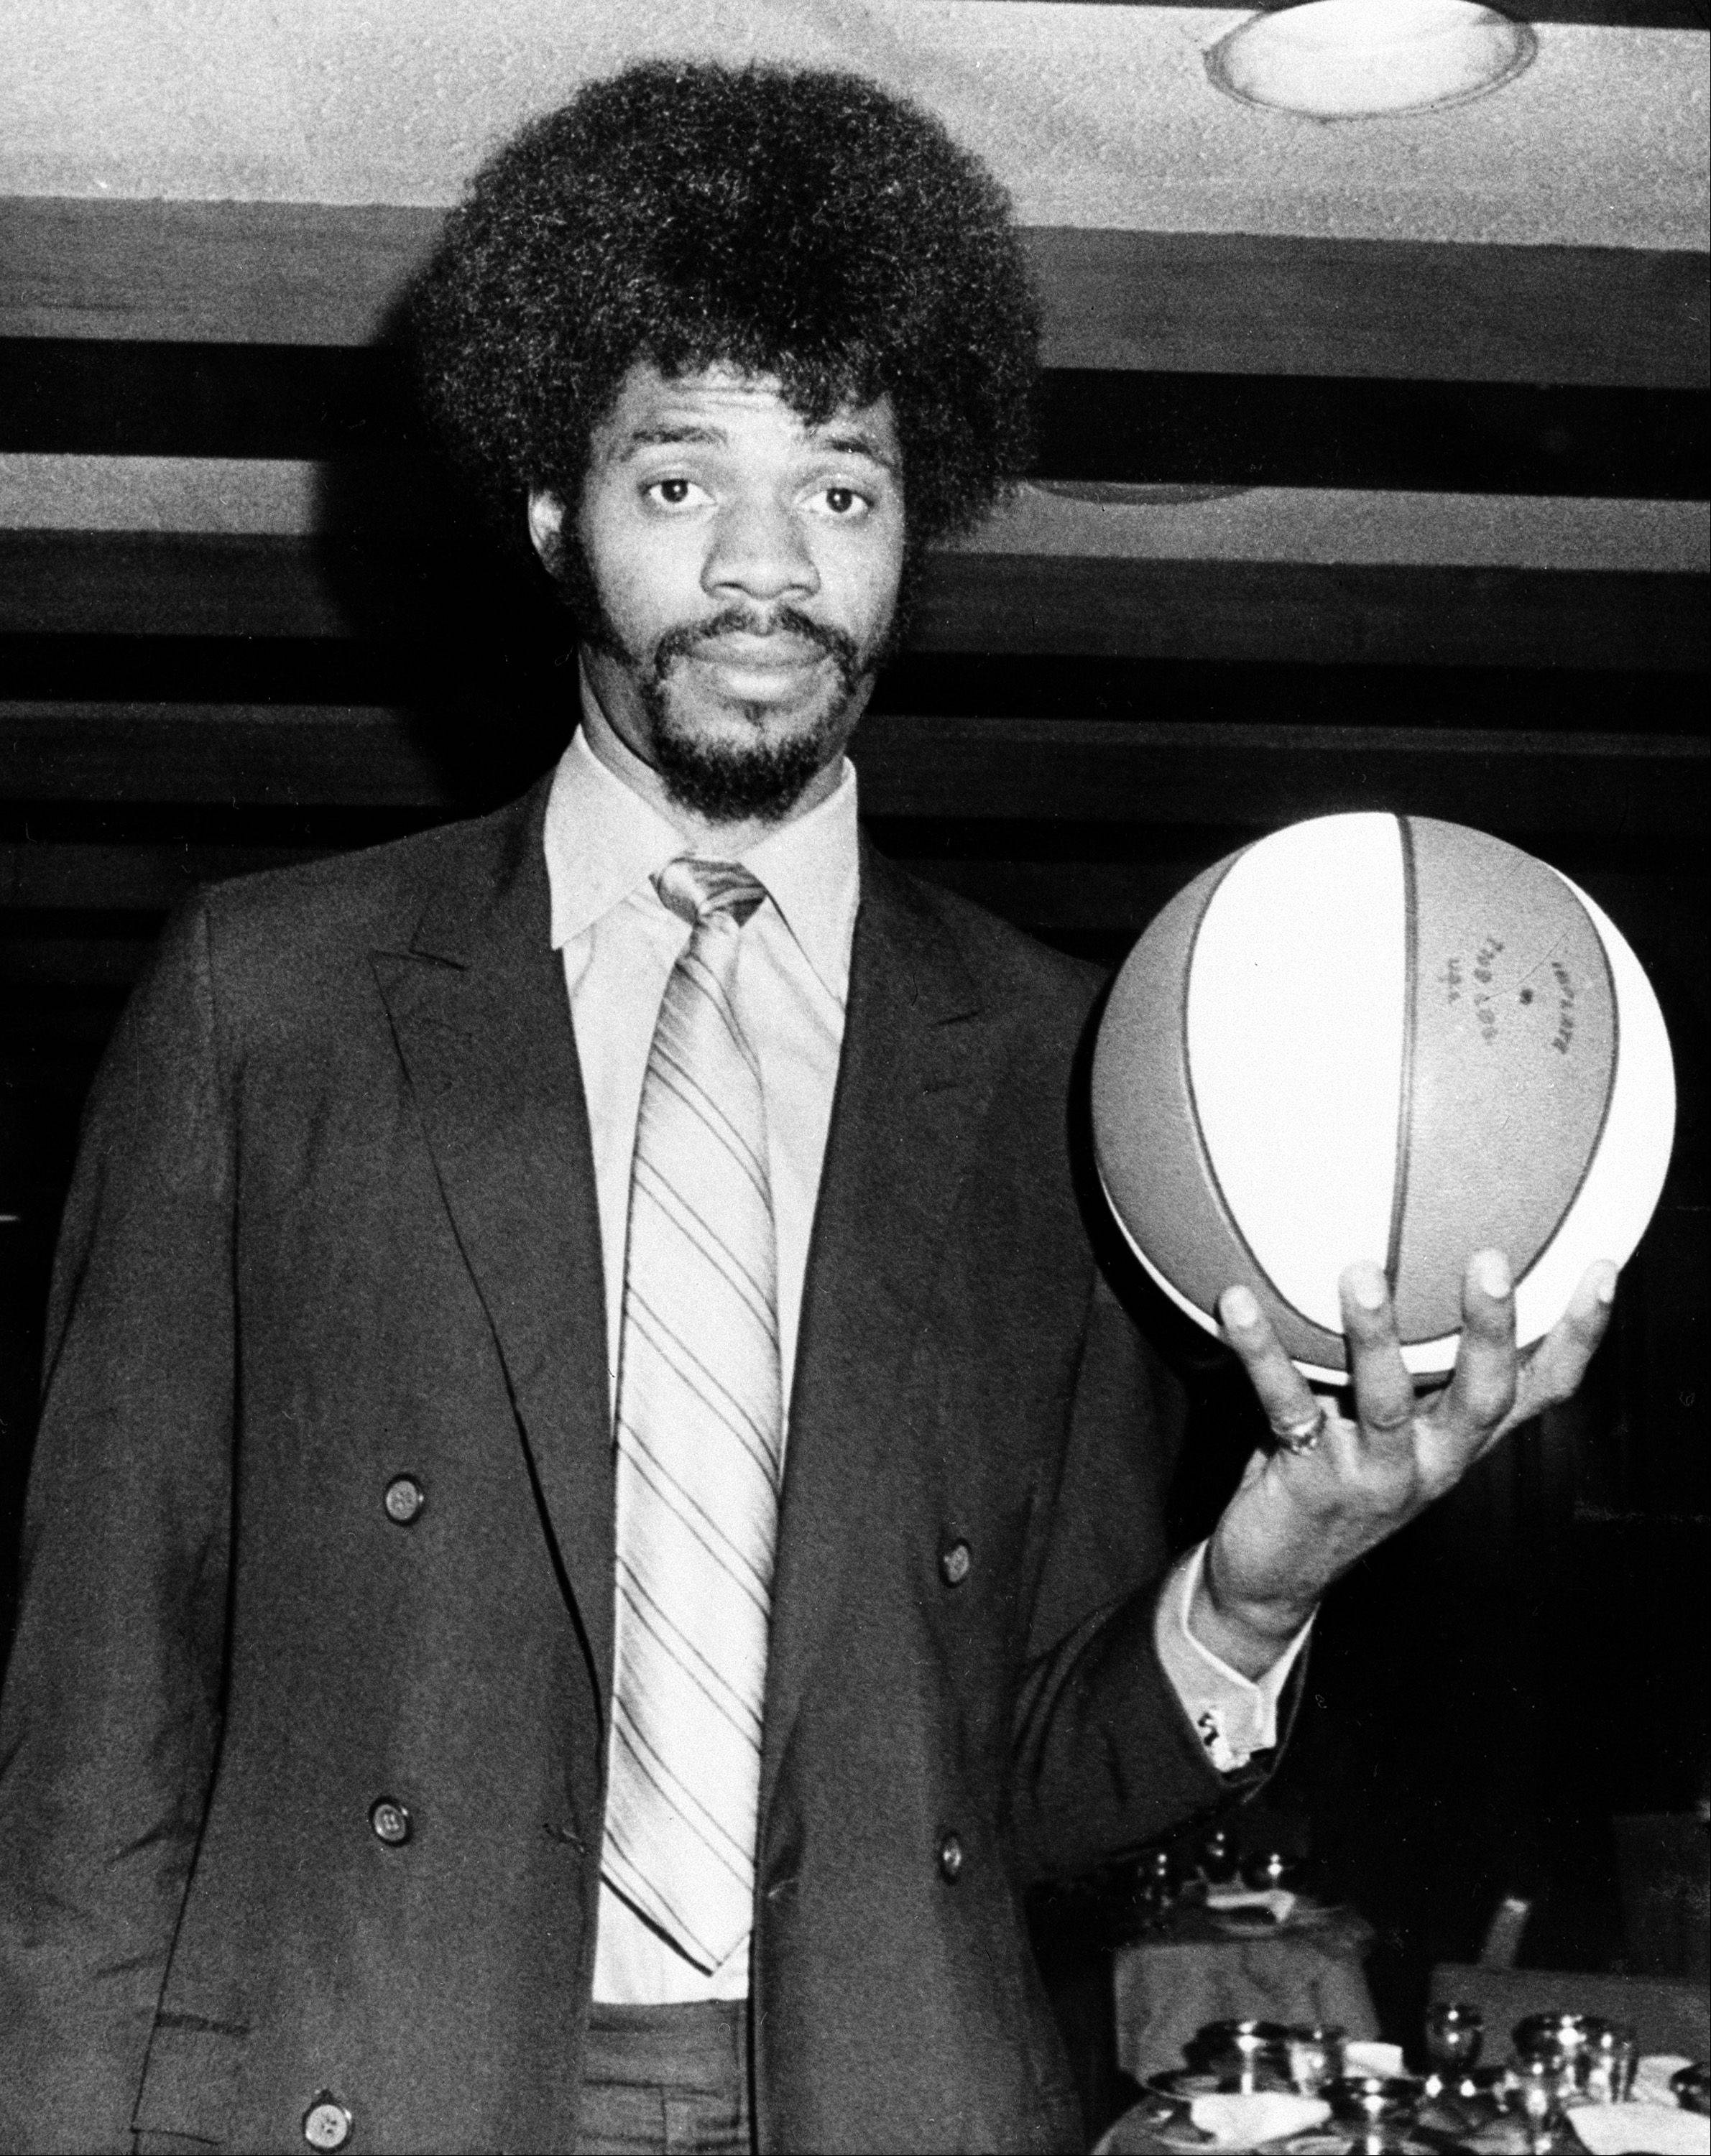 Artis Gilmore, 7-foot-2 player from Jacksonville University, is introduced to the press, on March 17, 1971, in New York, after he was signed by the Kentucky Colonels .